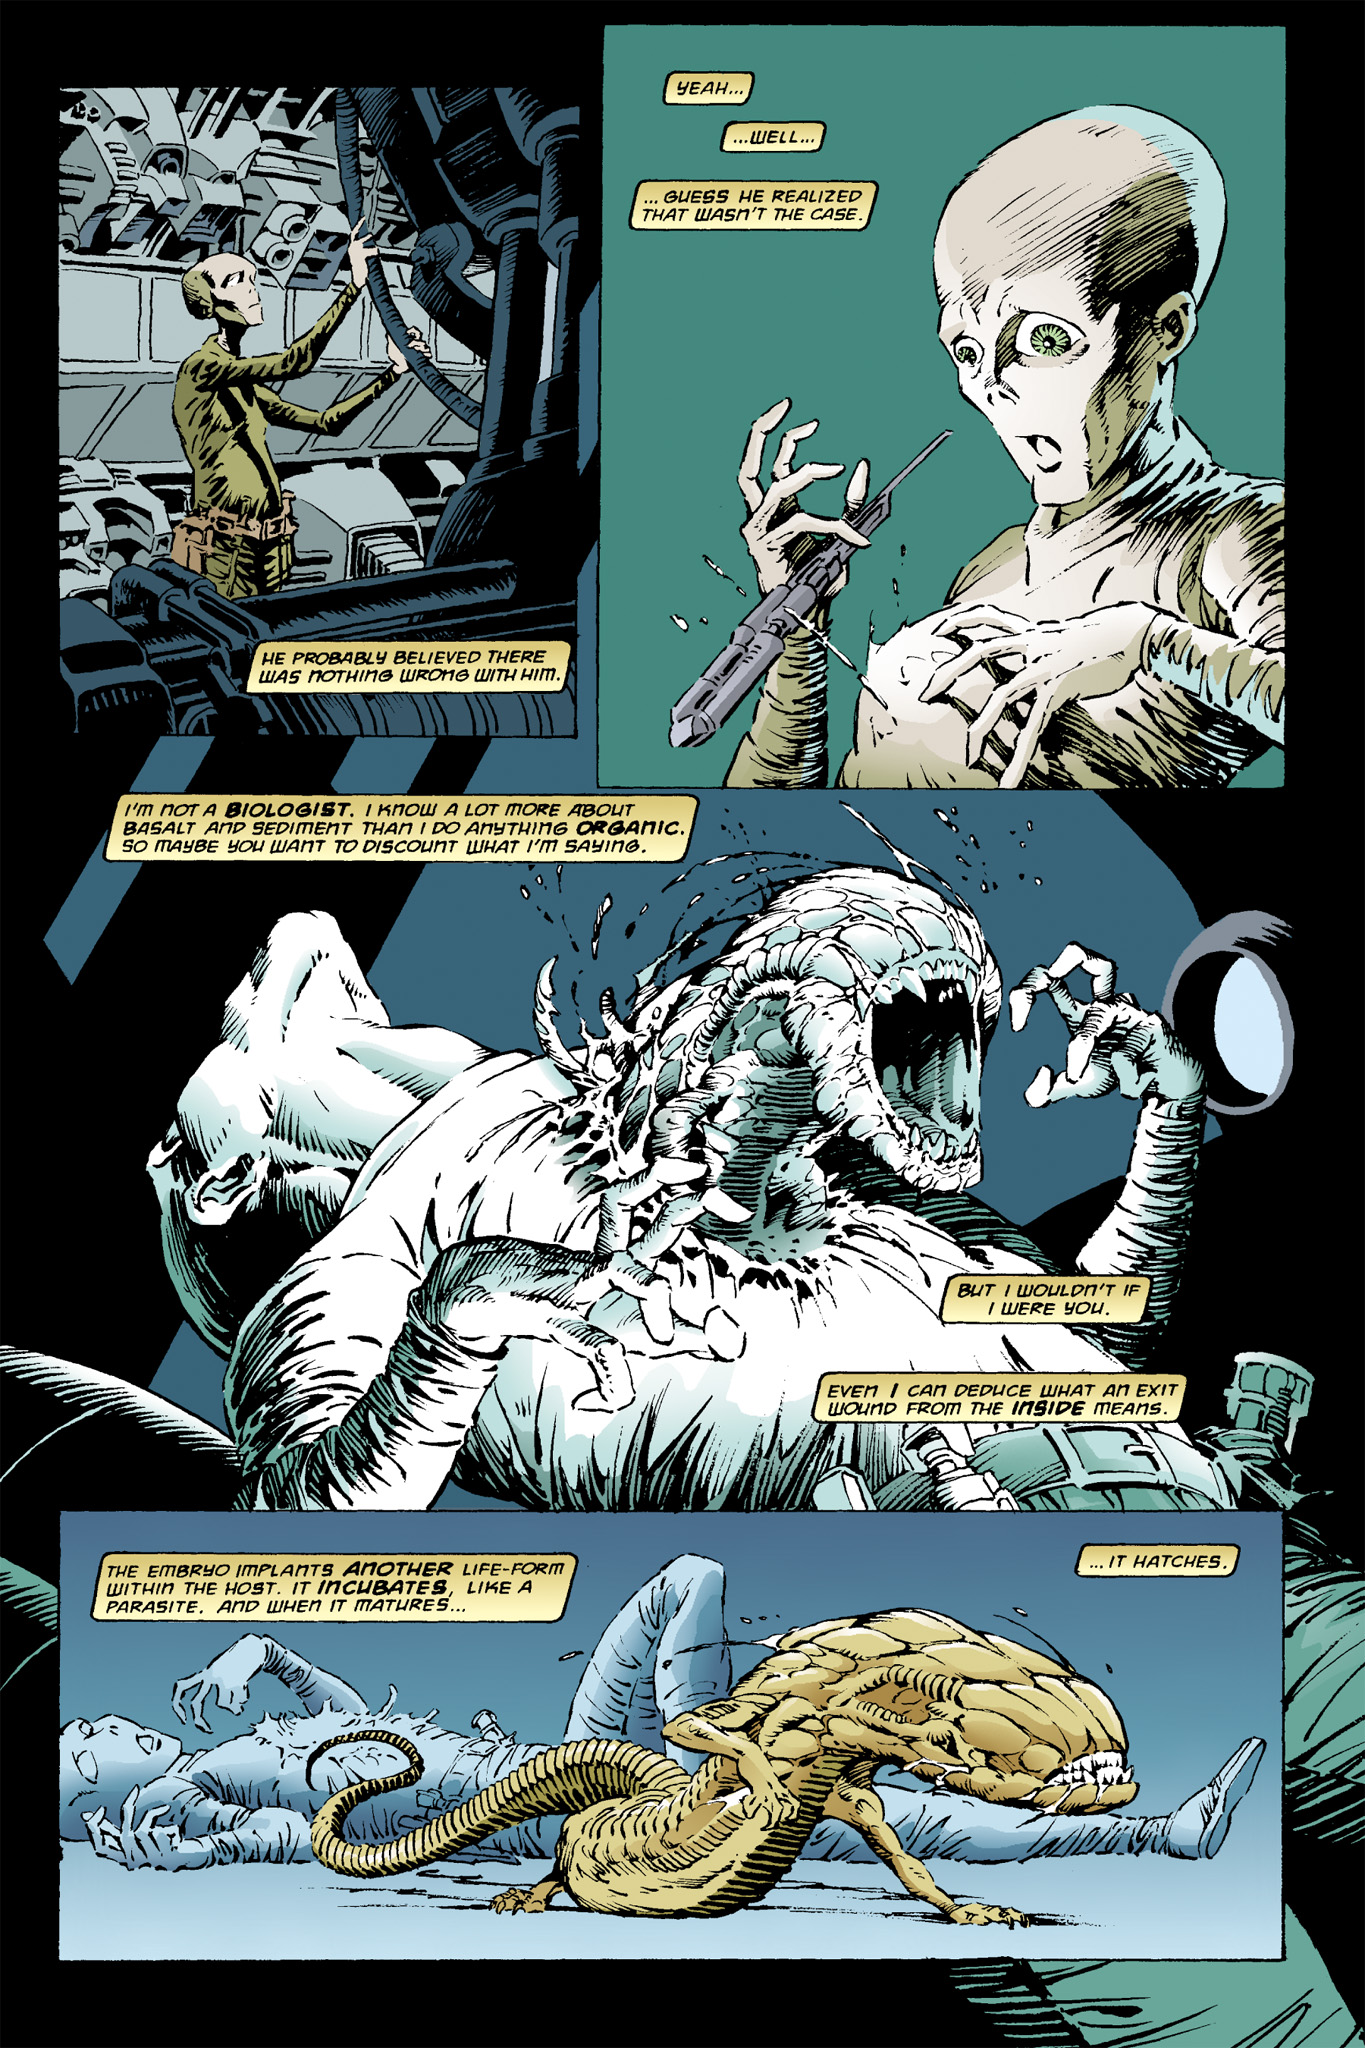 Read online Aliens: Incubation/Lucky/Taste comic -  Issue # Full - 7